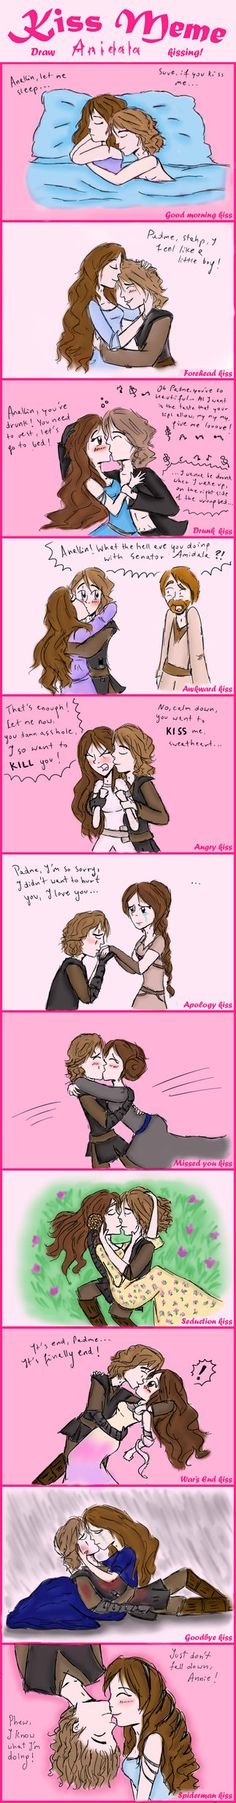 Anidala Kiss Meme! ^^ by AlaSkywalker- SO CUTE! I wish that when I get a bf, he'll be just like that.